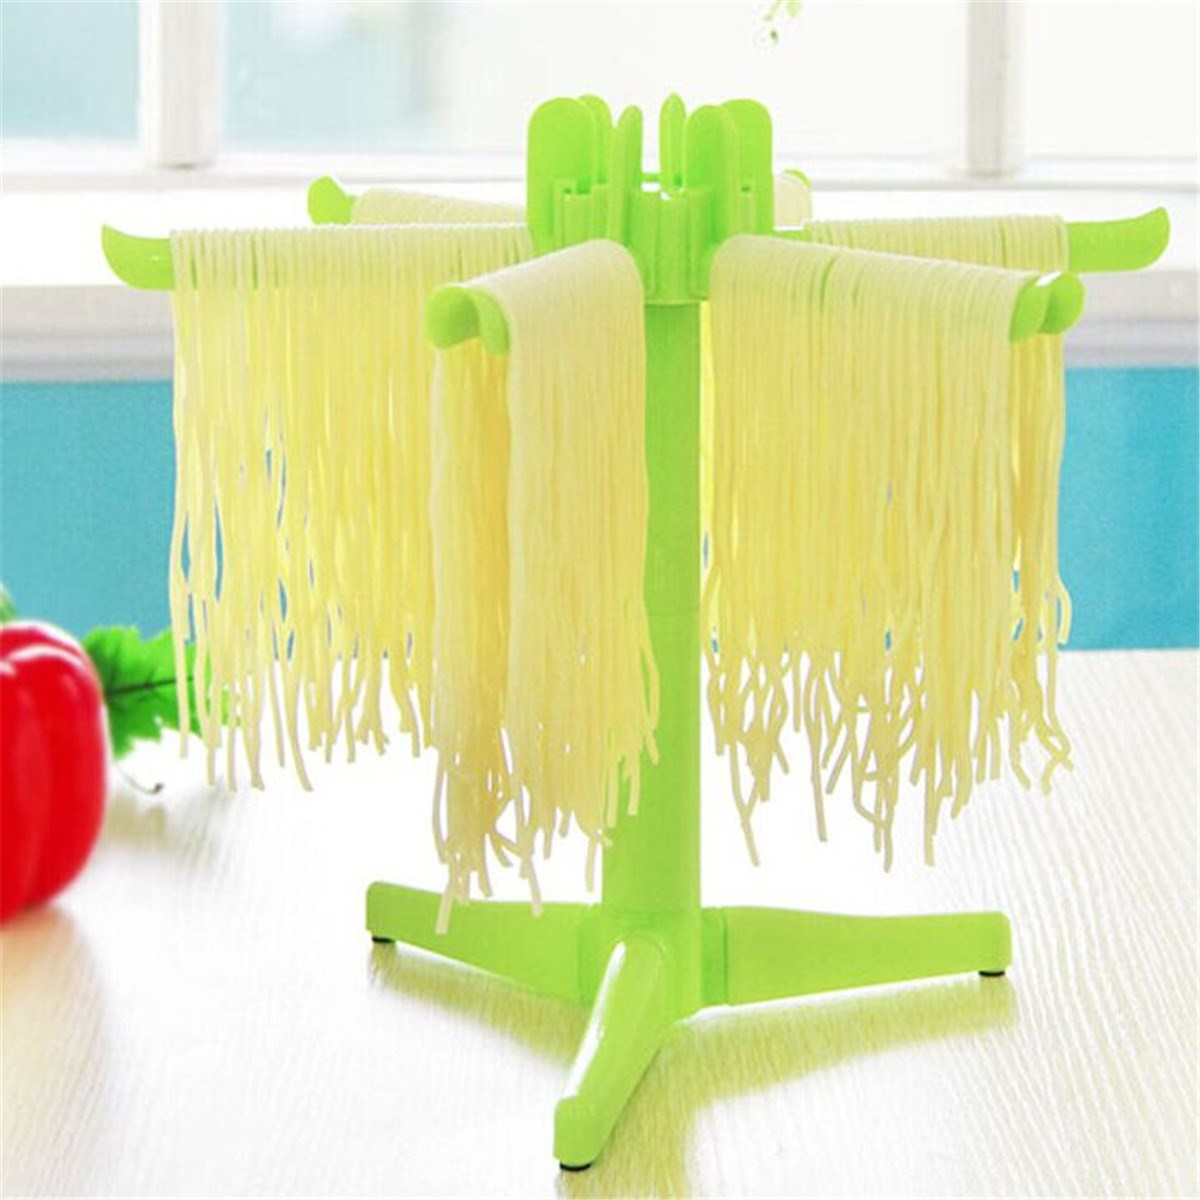 Noddle Drying Rack Hanging Noddle Spaghetti Fettuccine Dryer Practical Kitchen Household Pasta Stand Tools For Shelve(China (Mainland))